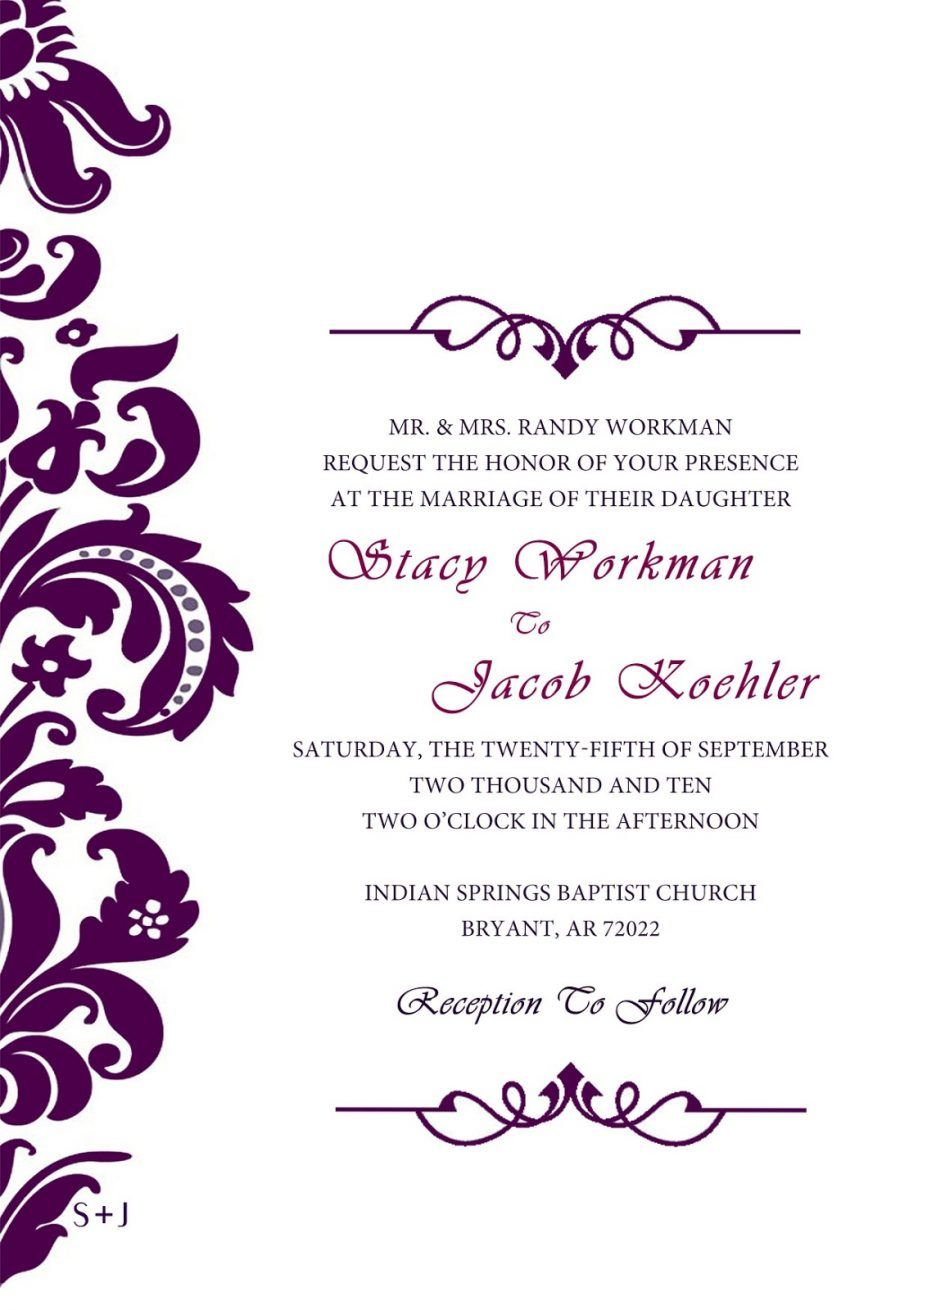 Wedding Invitation Templates Invitations Wedding Formal Wedding - Wedding invitations template online